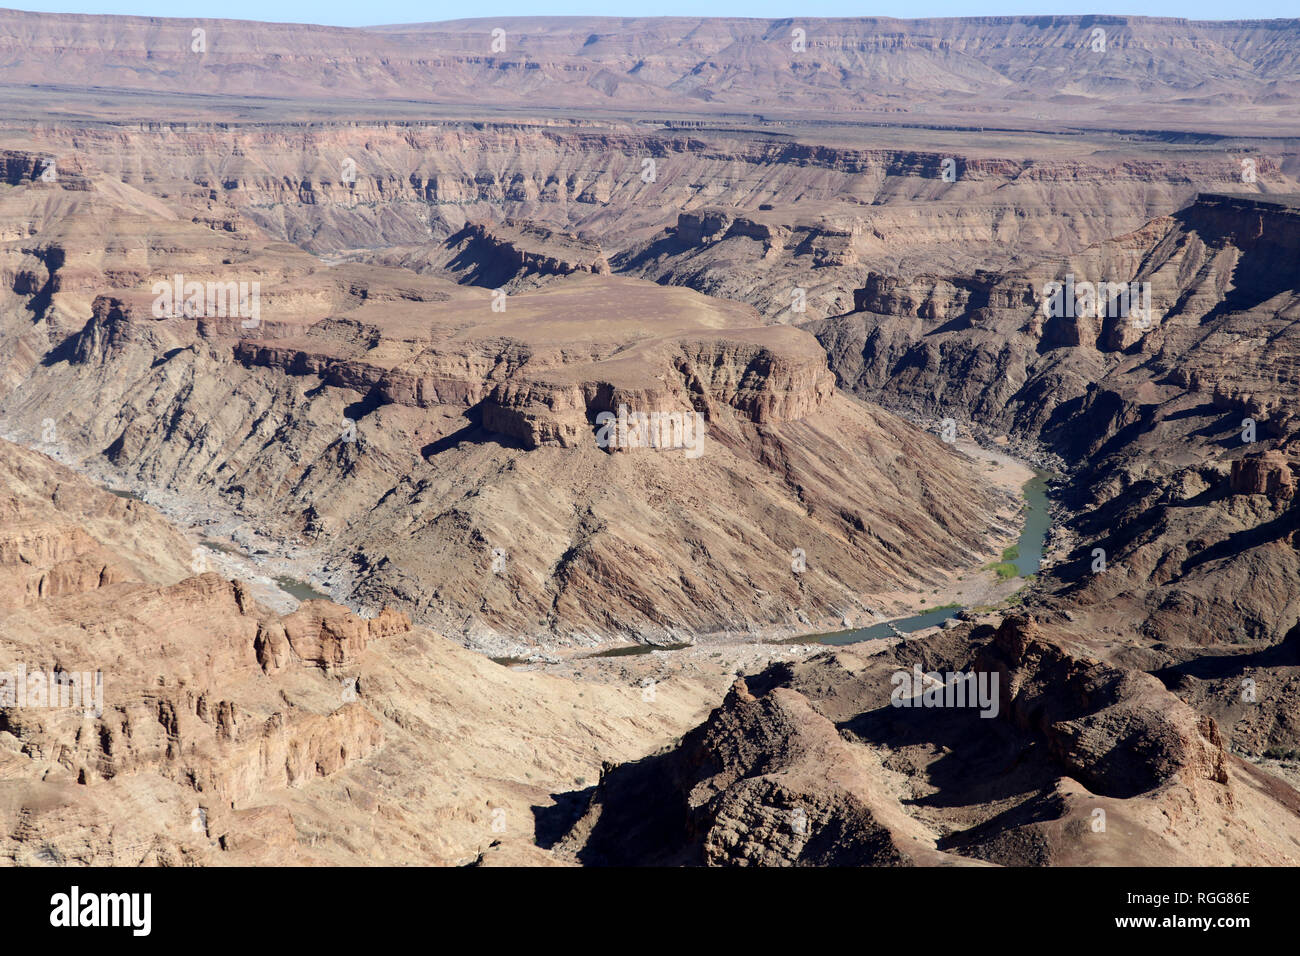 Sensational view of the Fish River Canyon - the second largest canyon in the world - Namibia Africa - Stock Image